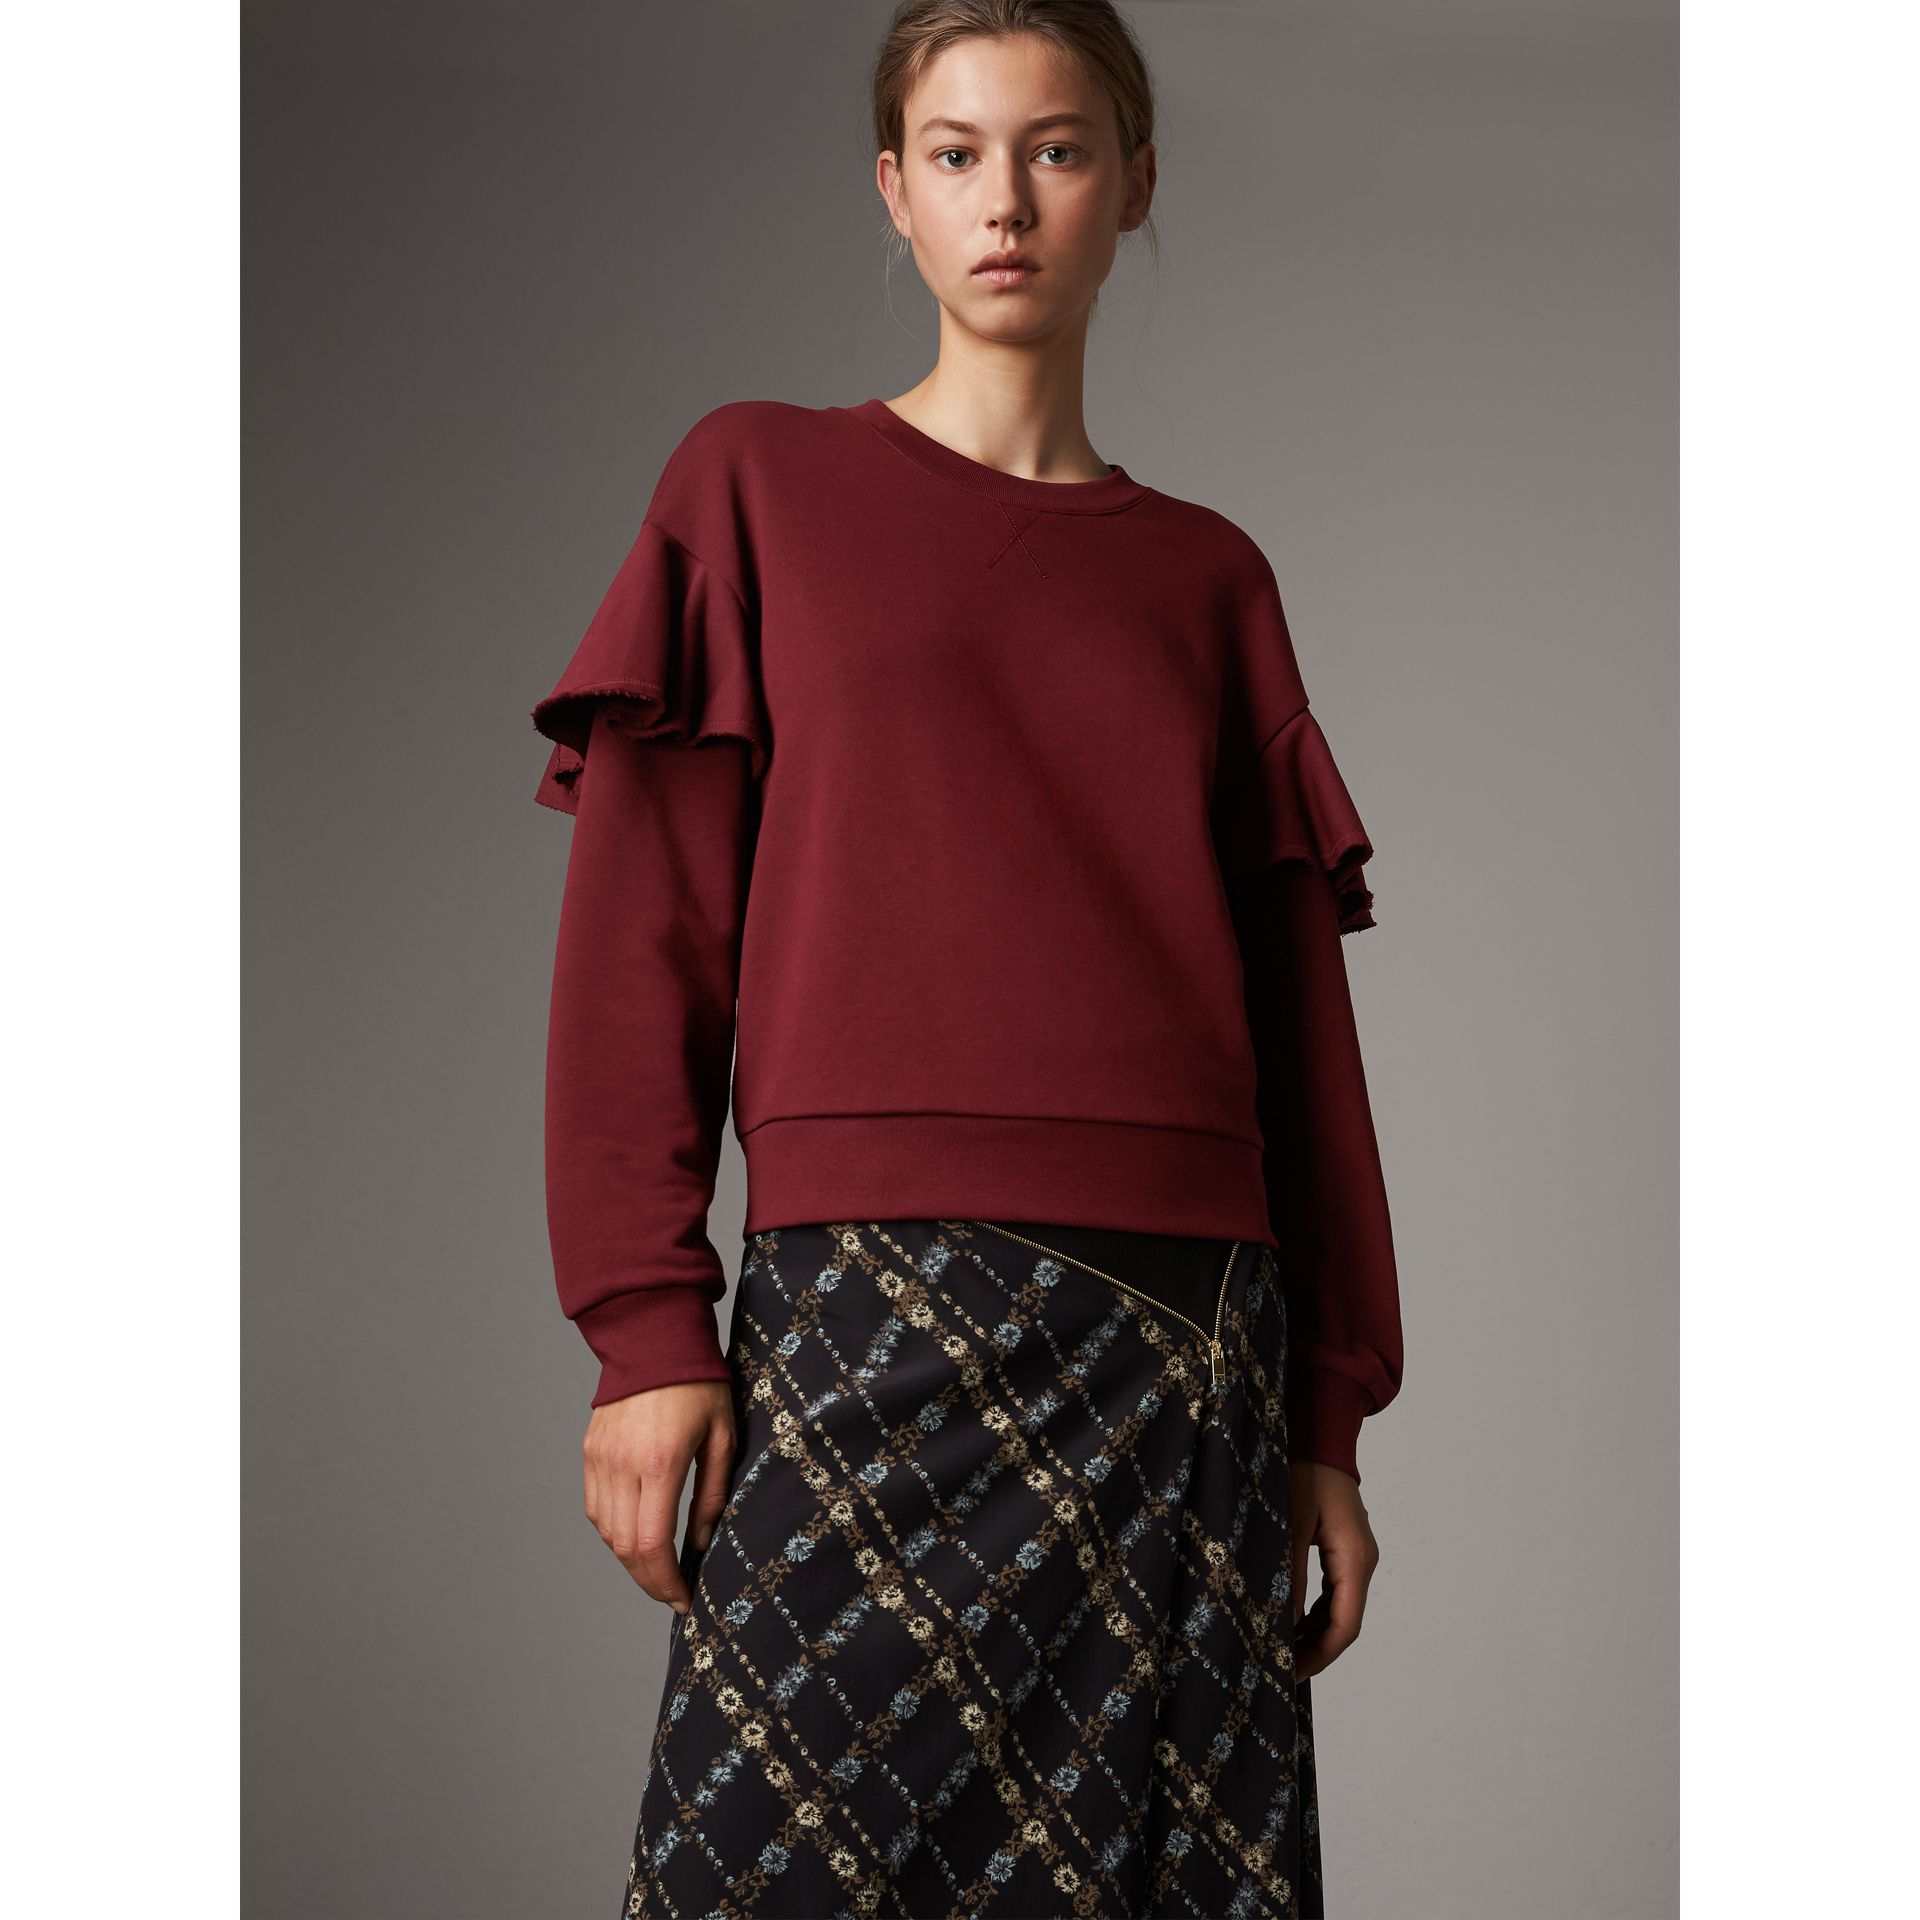 Ruffle Detail Cotton Jersey Sweatshirt in Dark Plum - Women | Burberry - gallery image 1